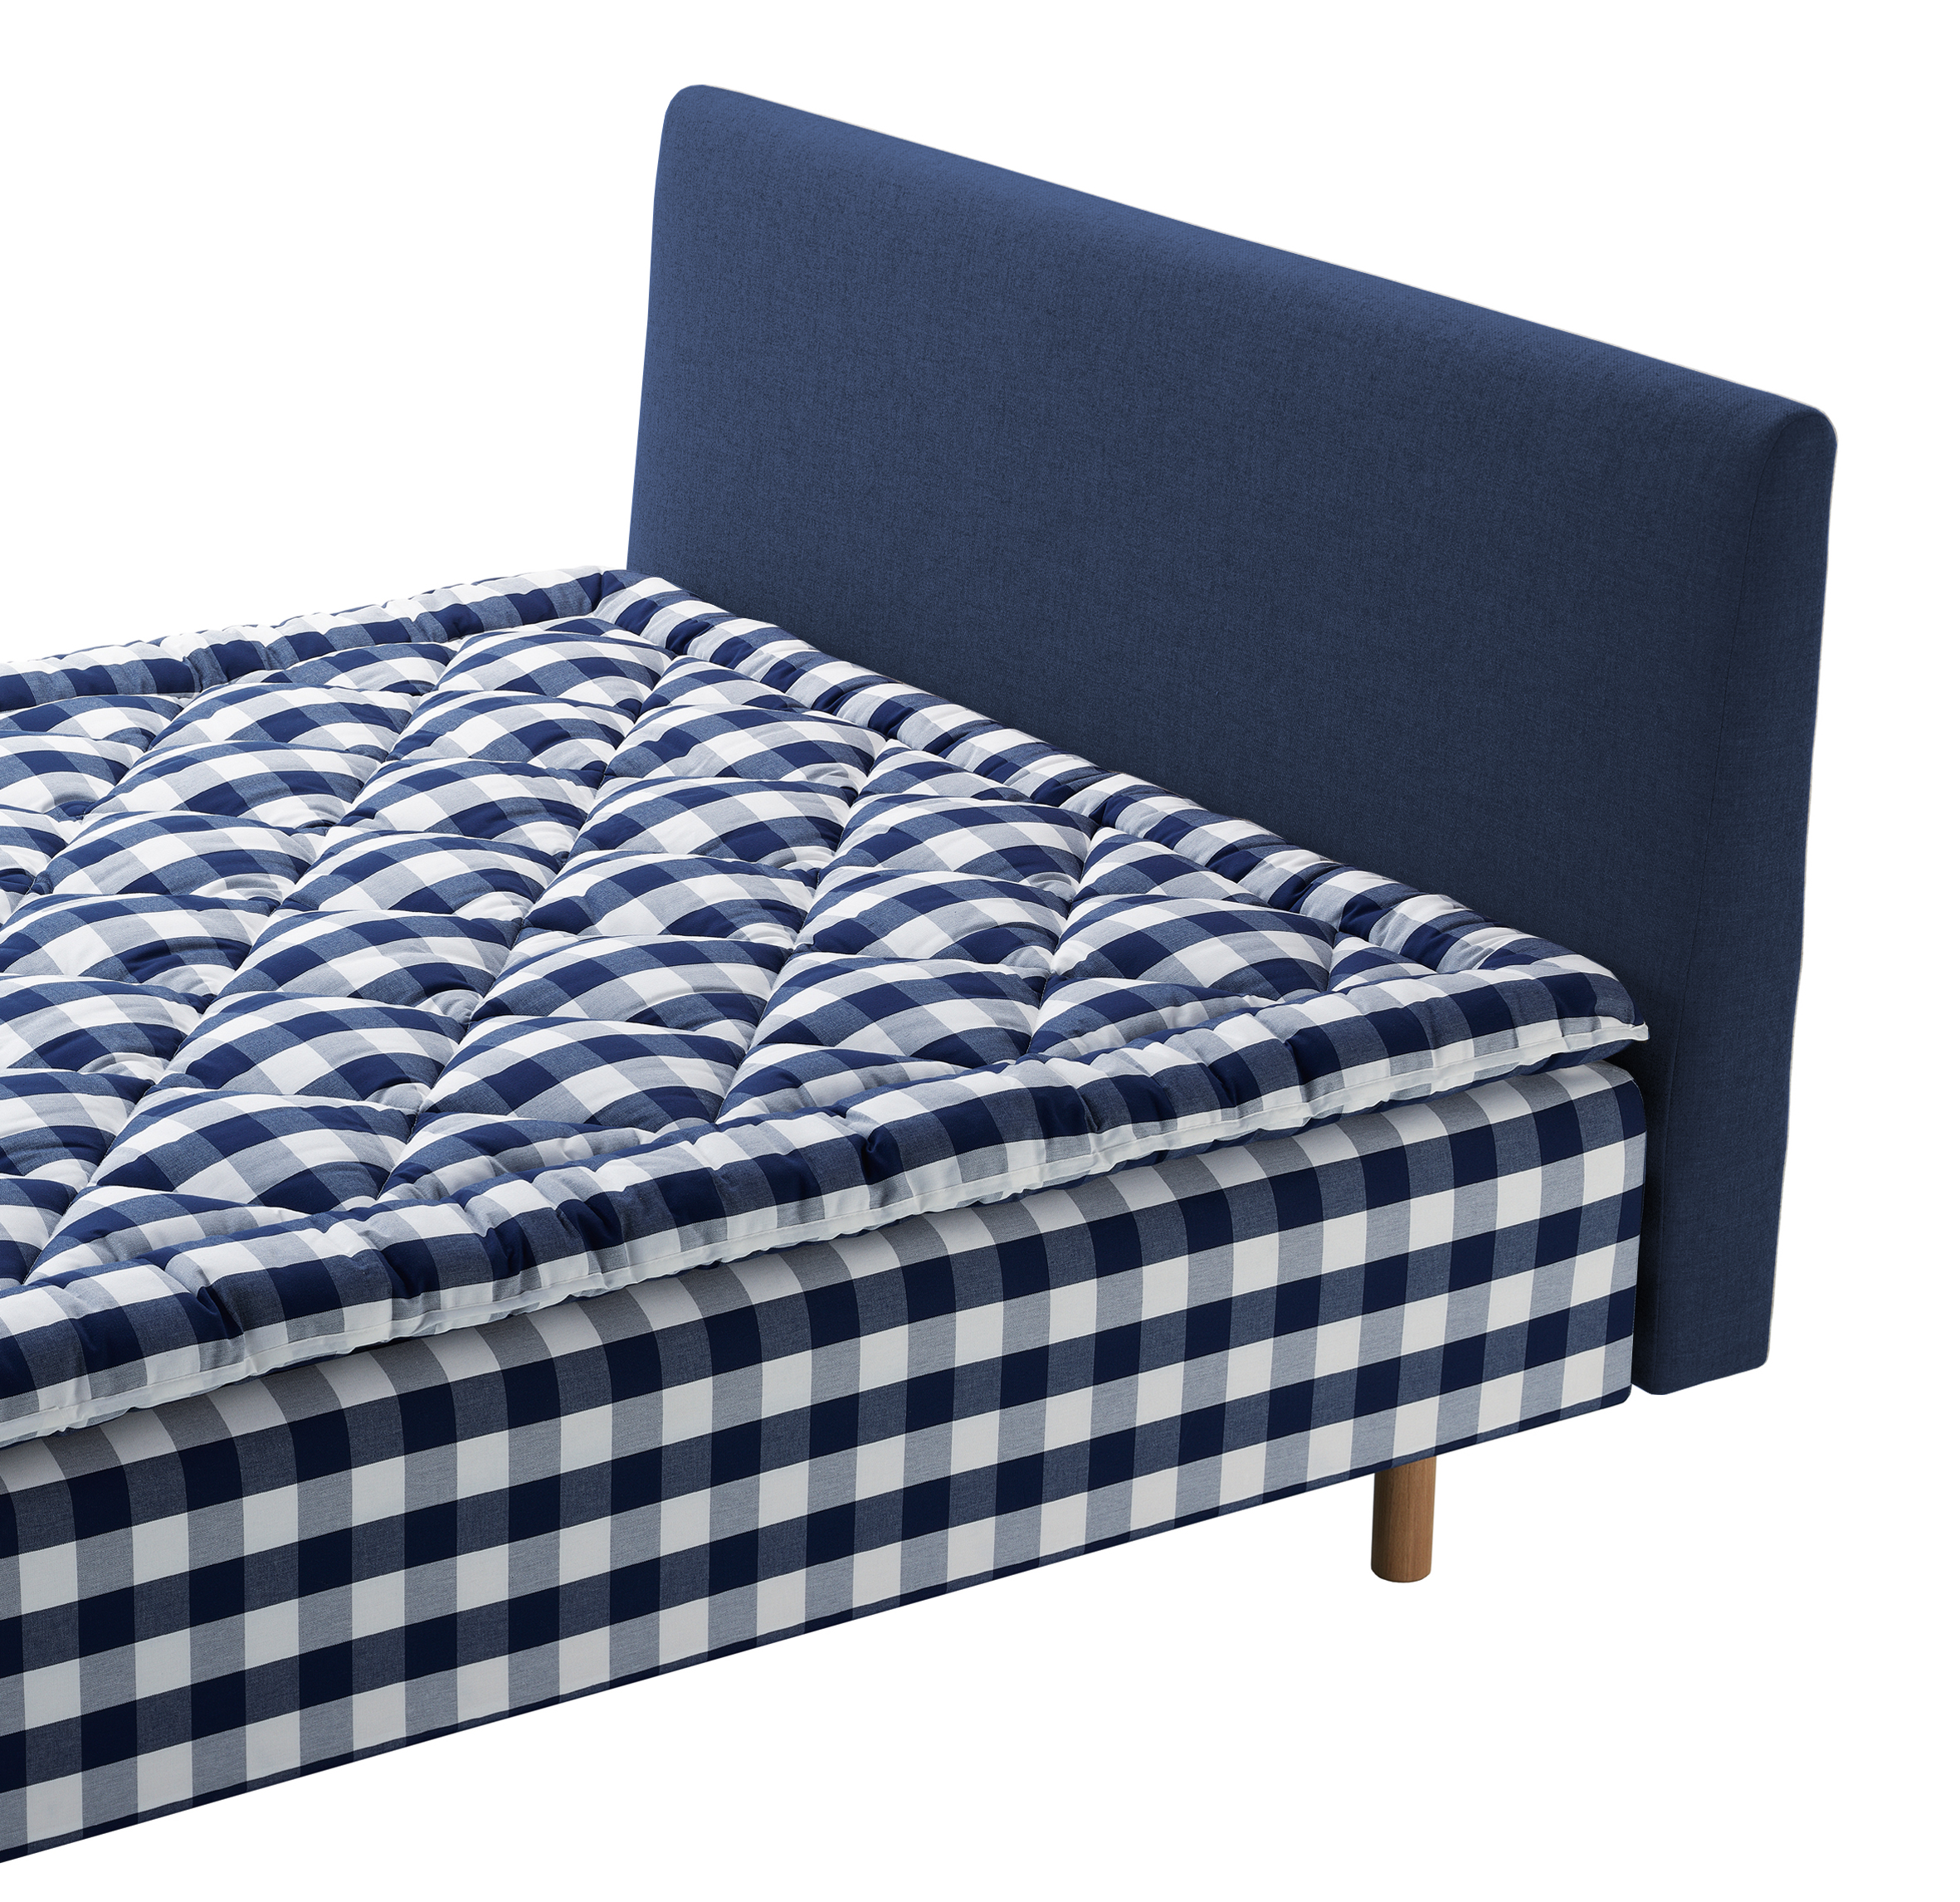 David, Made of FSC-certified wood, wool, cotton. Available in 2 heights: 37,4 inches; 49,2 inches